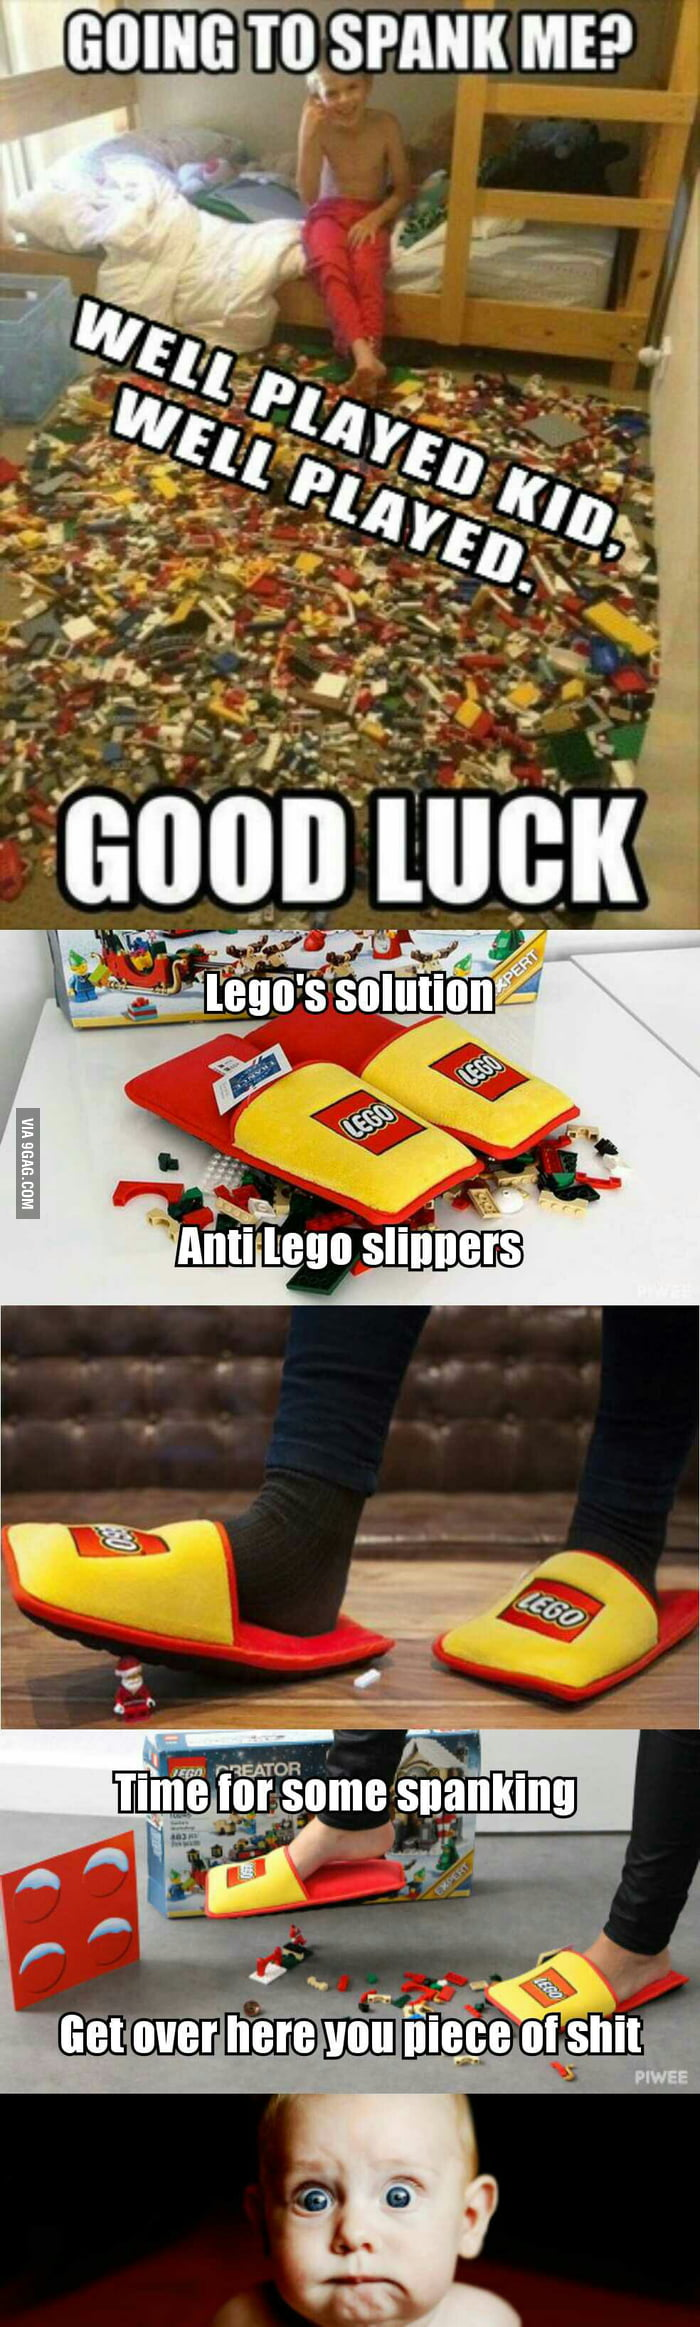 Well played Lego. Well played.